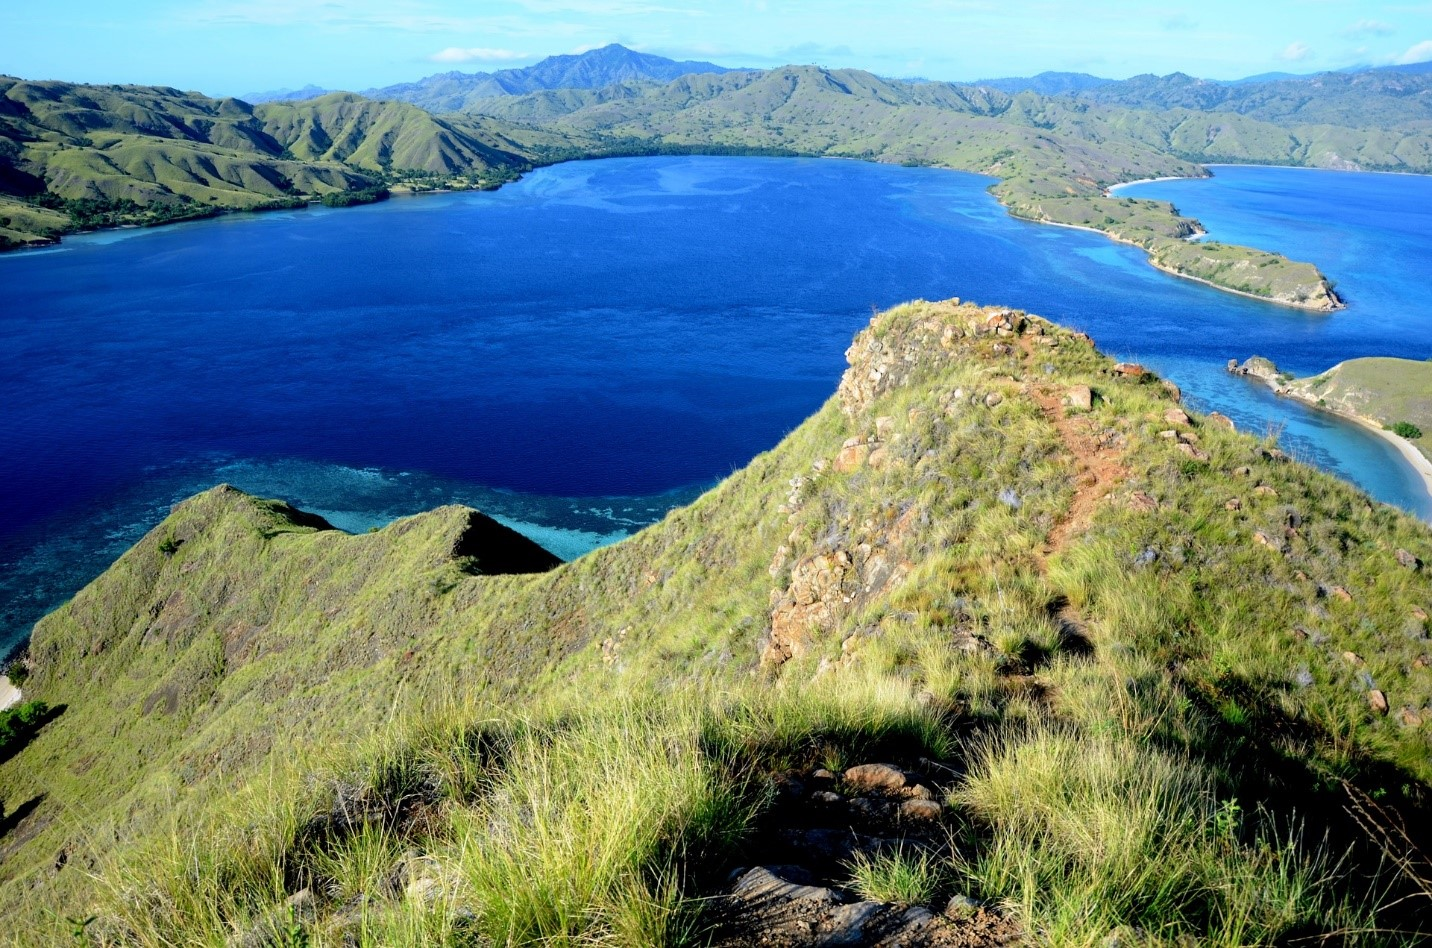 Labuan Bajo Lake